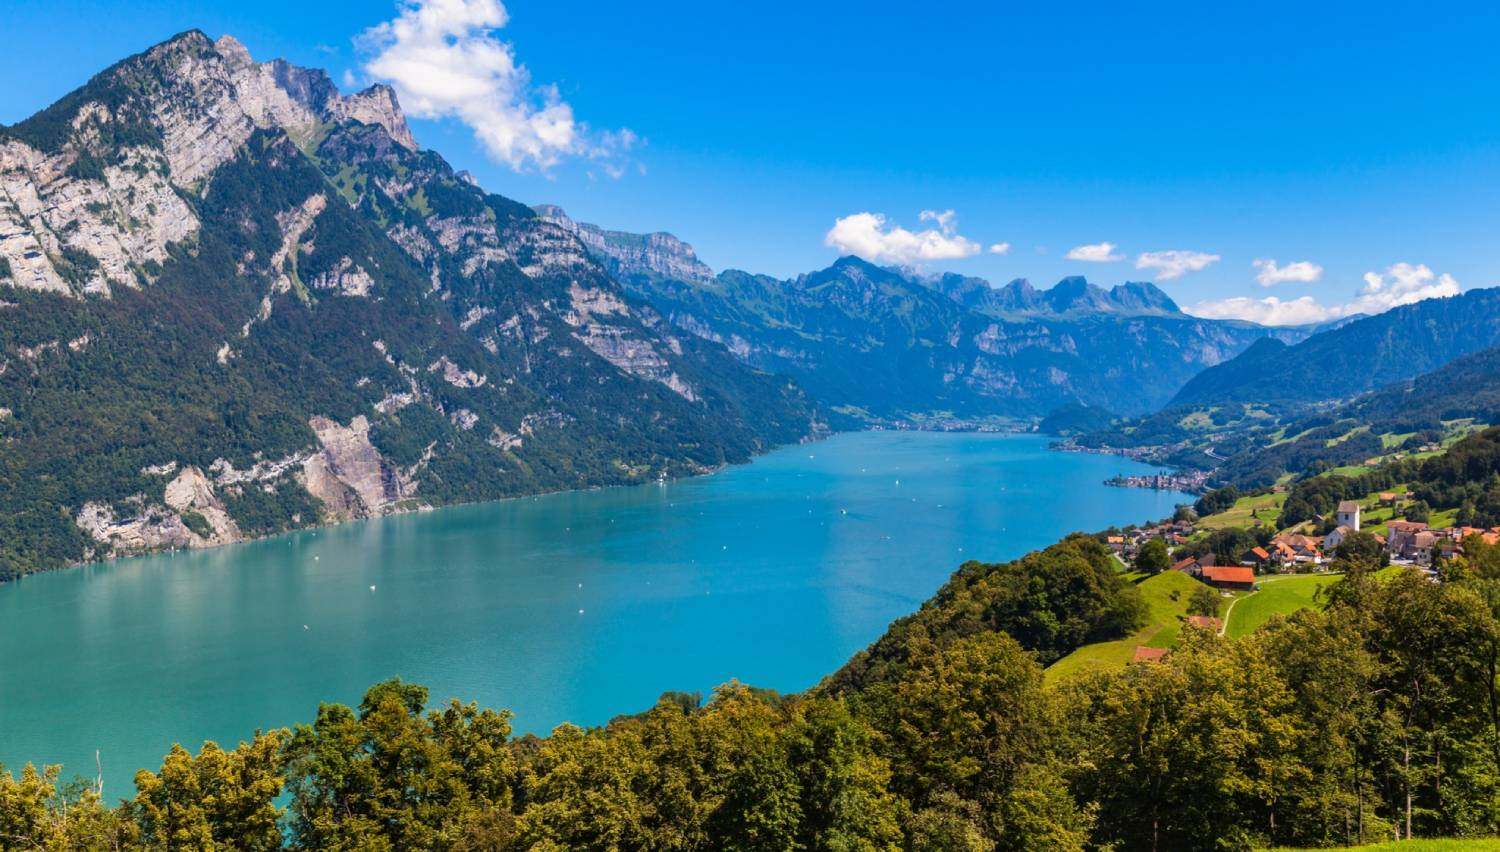 Lake Walen (Walensee) - The Best Places To Visit In Switzerland